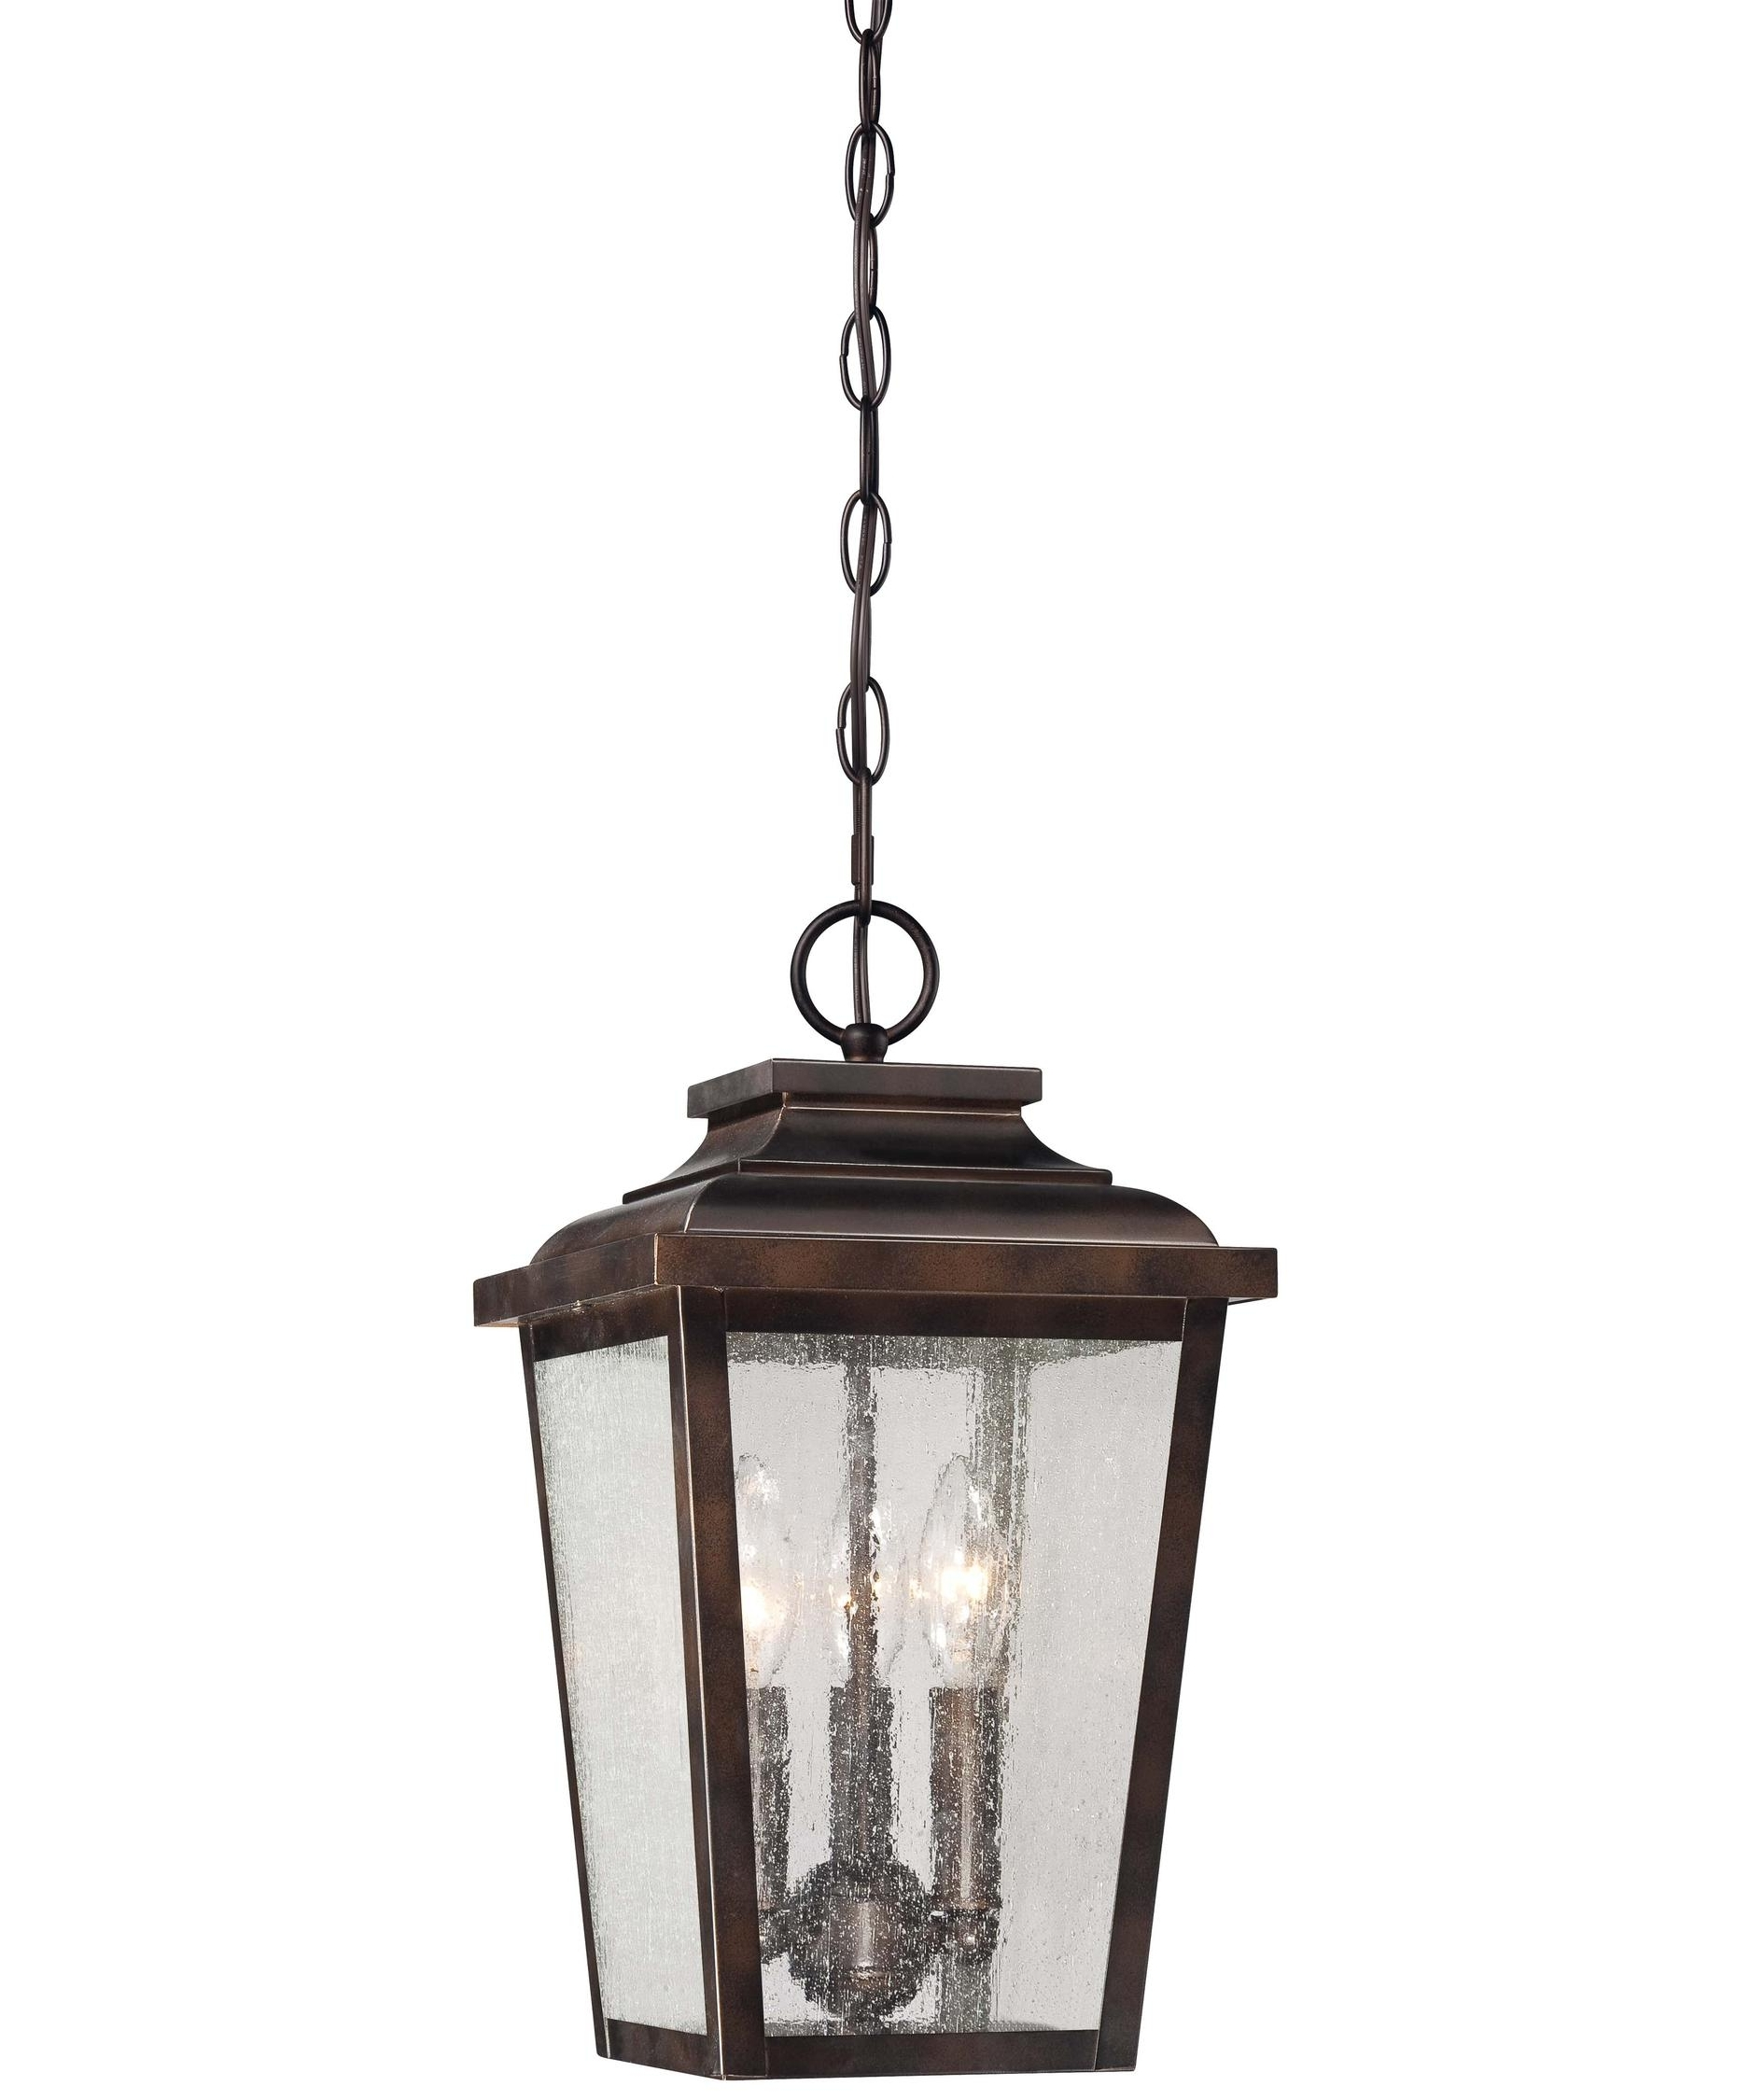 Outdoor Hanging Lighting Fixtures In Well Known Minka Lavery 72174 Irvington Manor 9 Inch Wide 3 Light Outdoor (View 10 of 20)